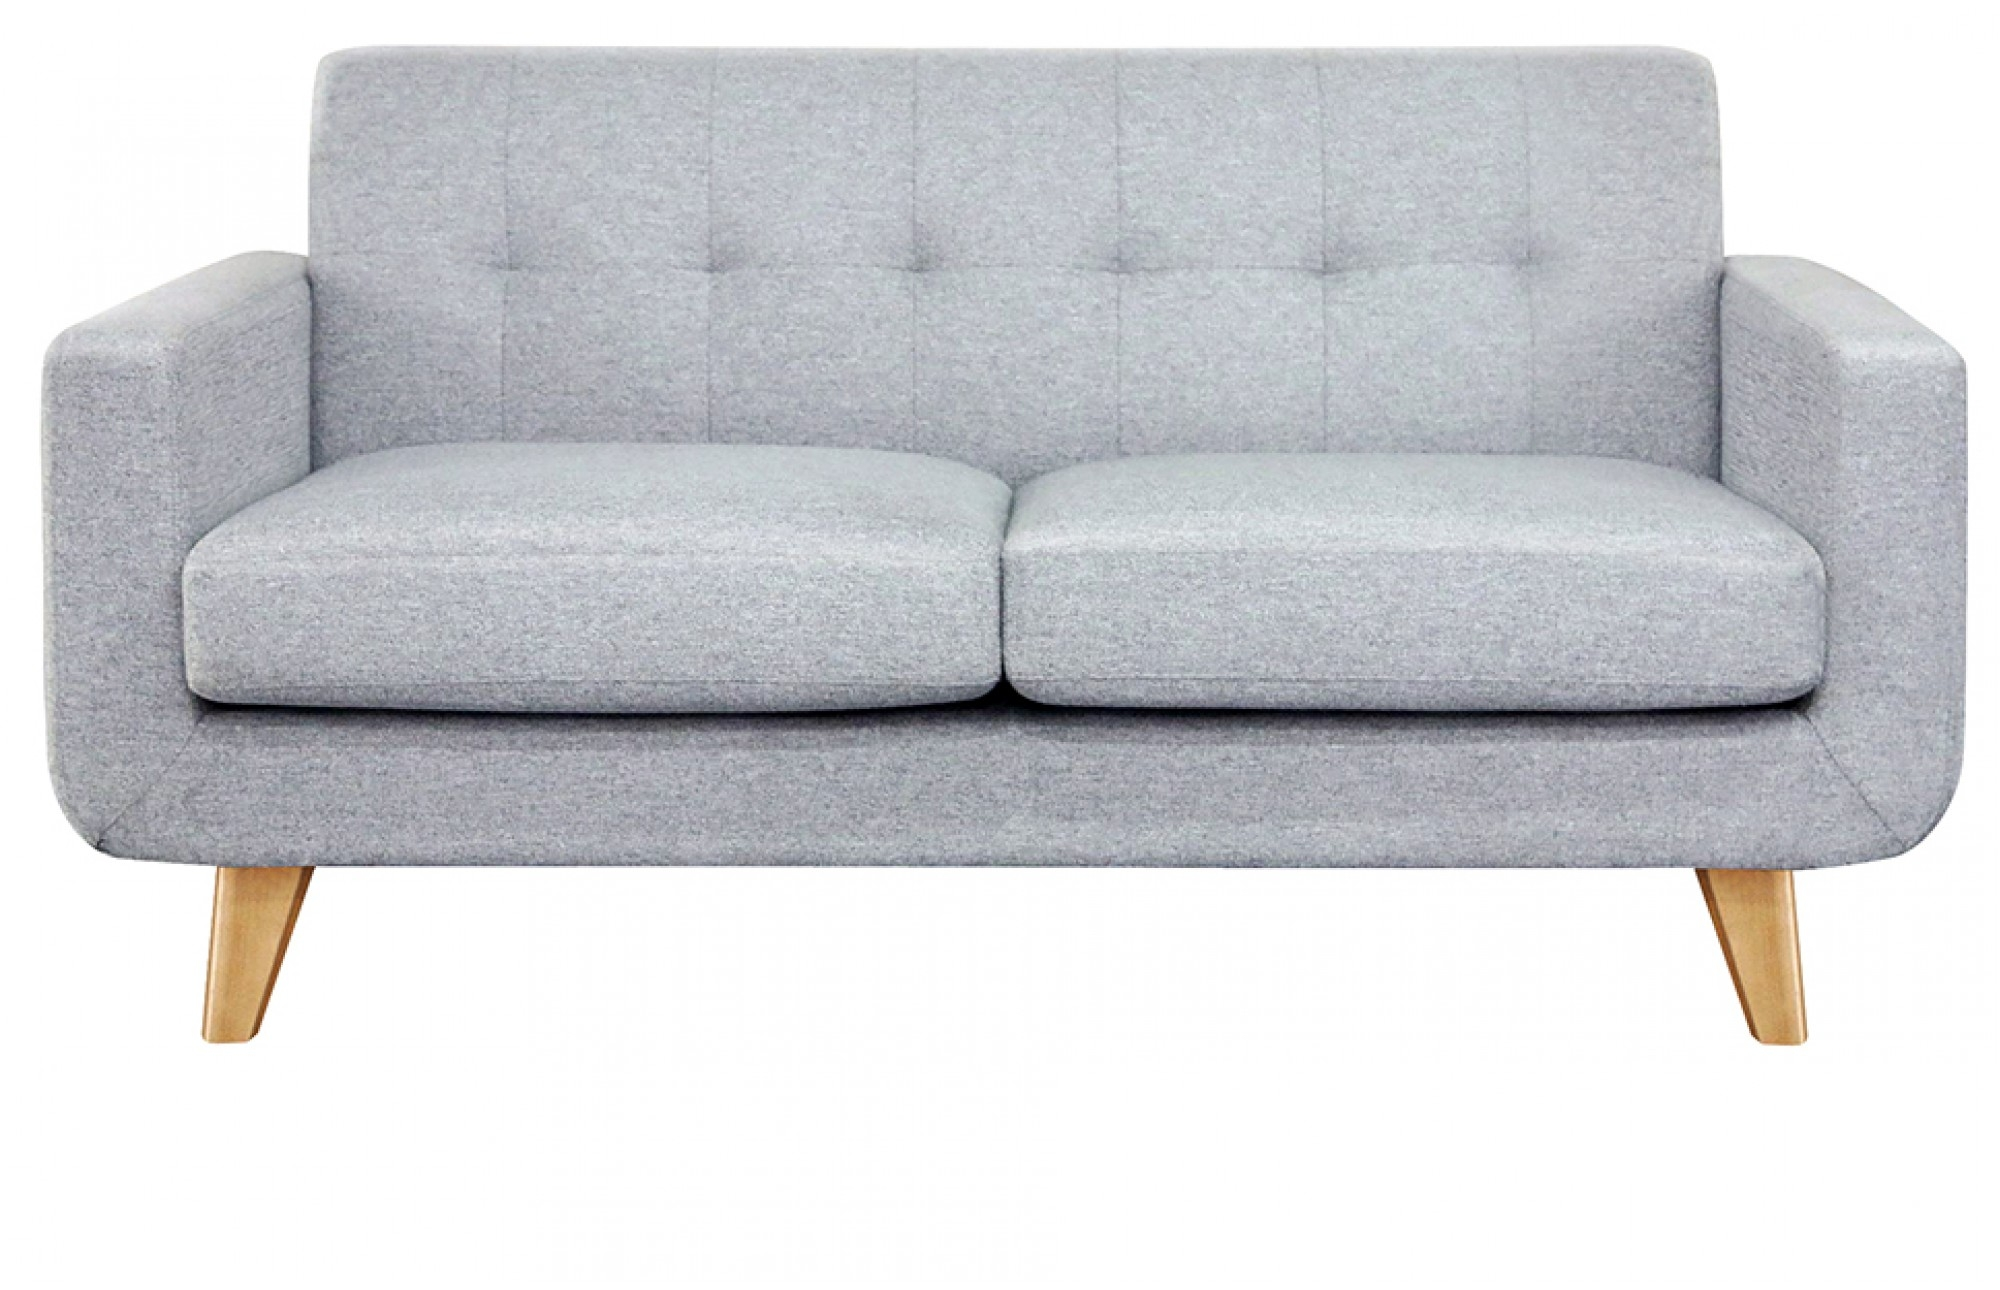 2 Seater Sofas Intended For Two Seater Sofas (Image 2 of 15)